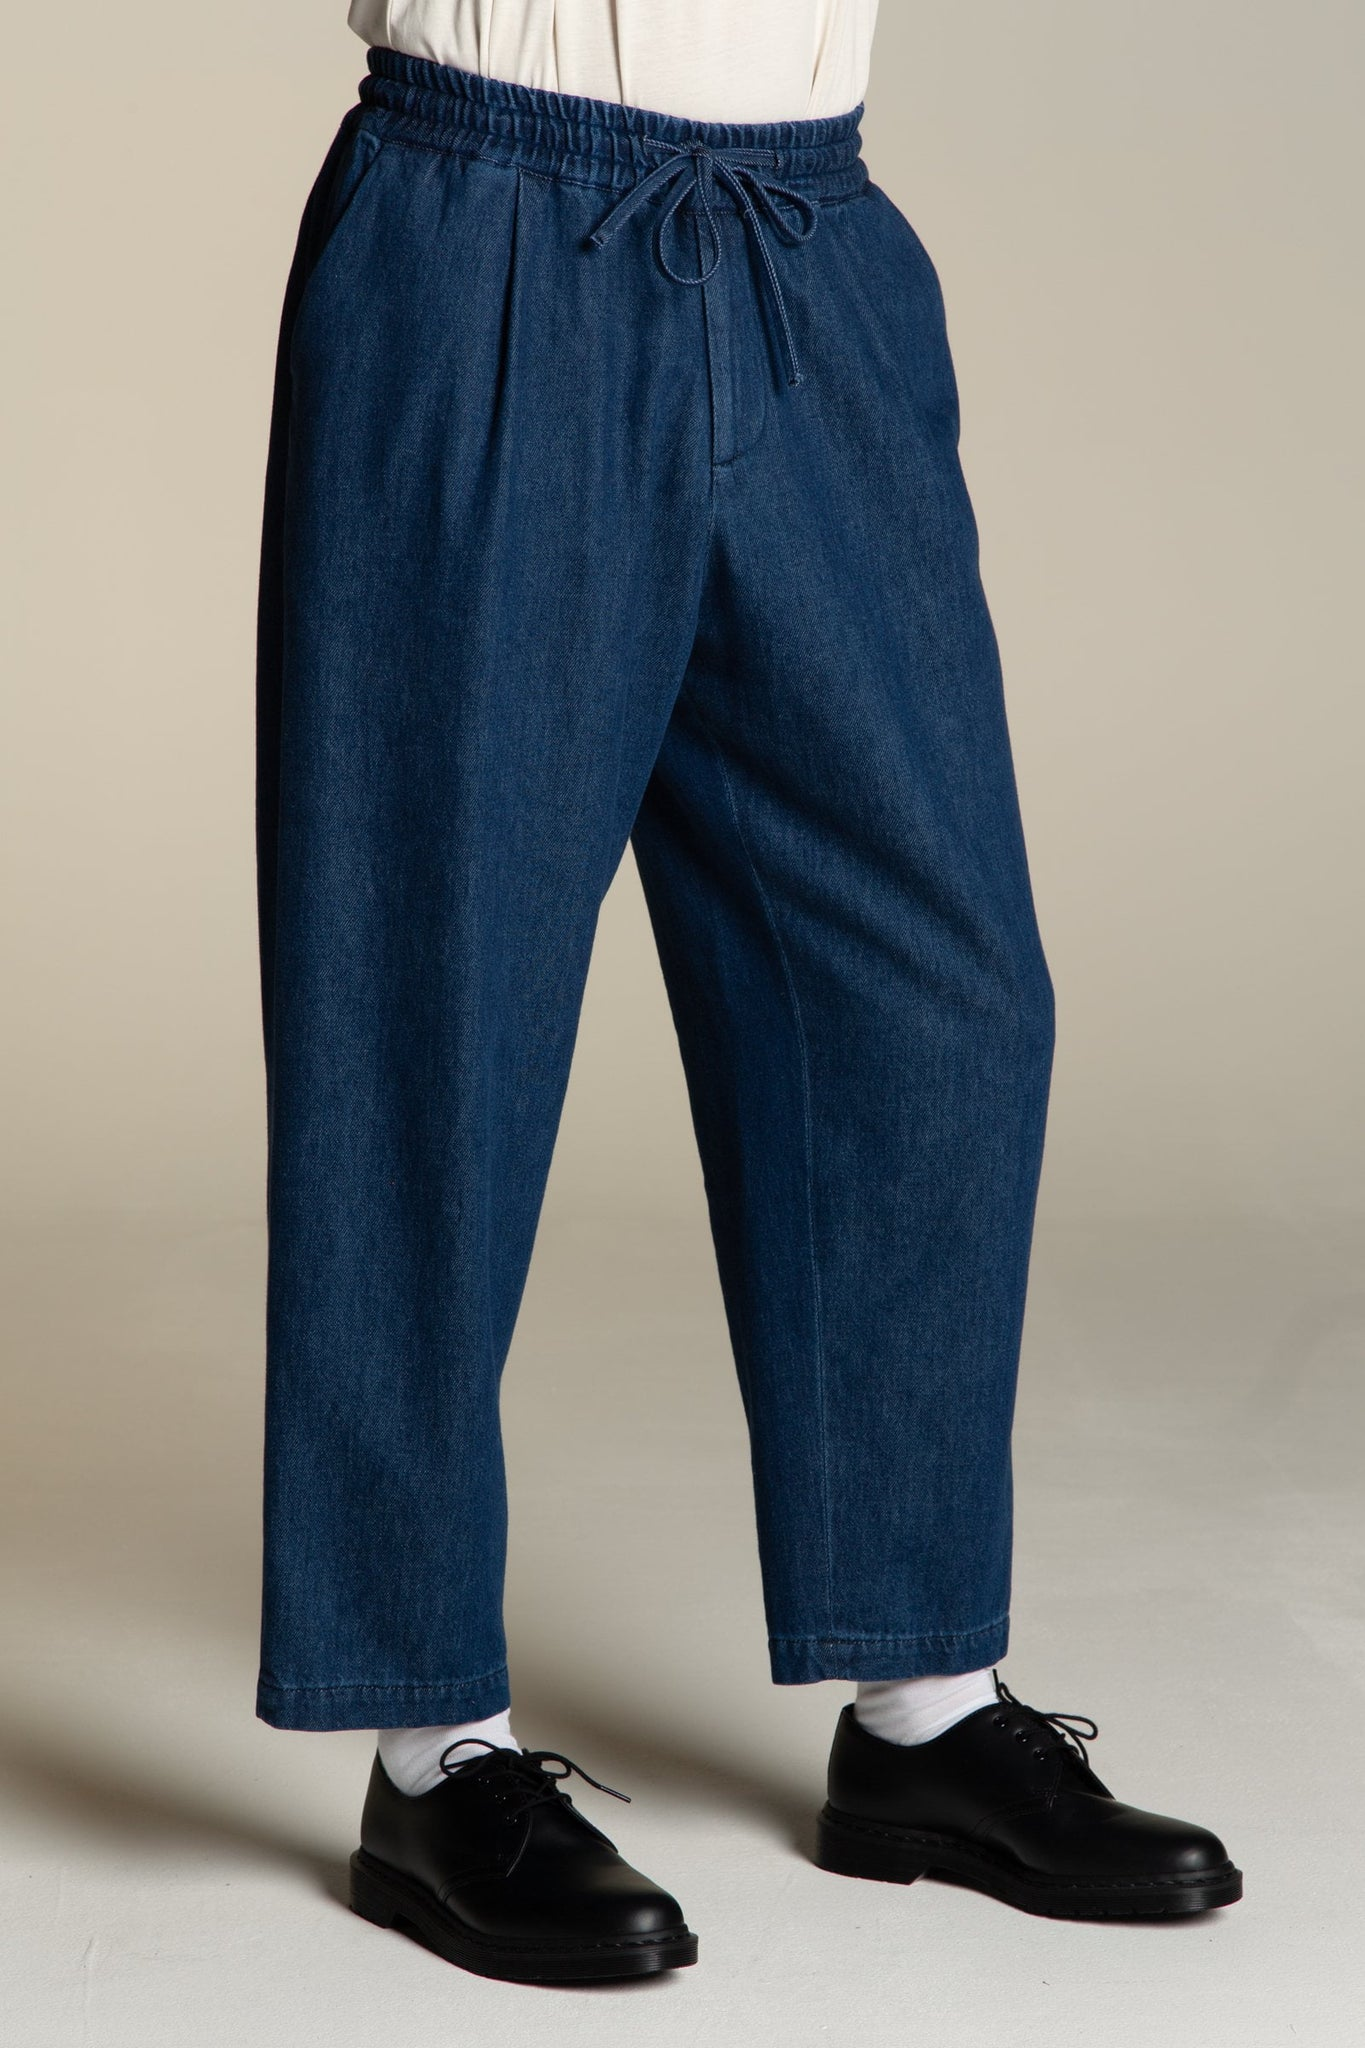 Pants oversize denim – stone blue